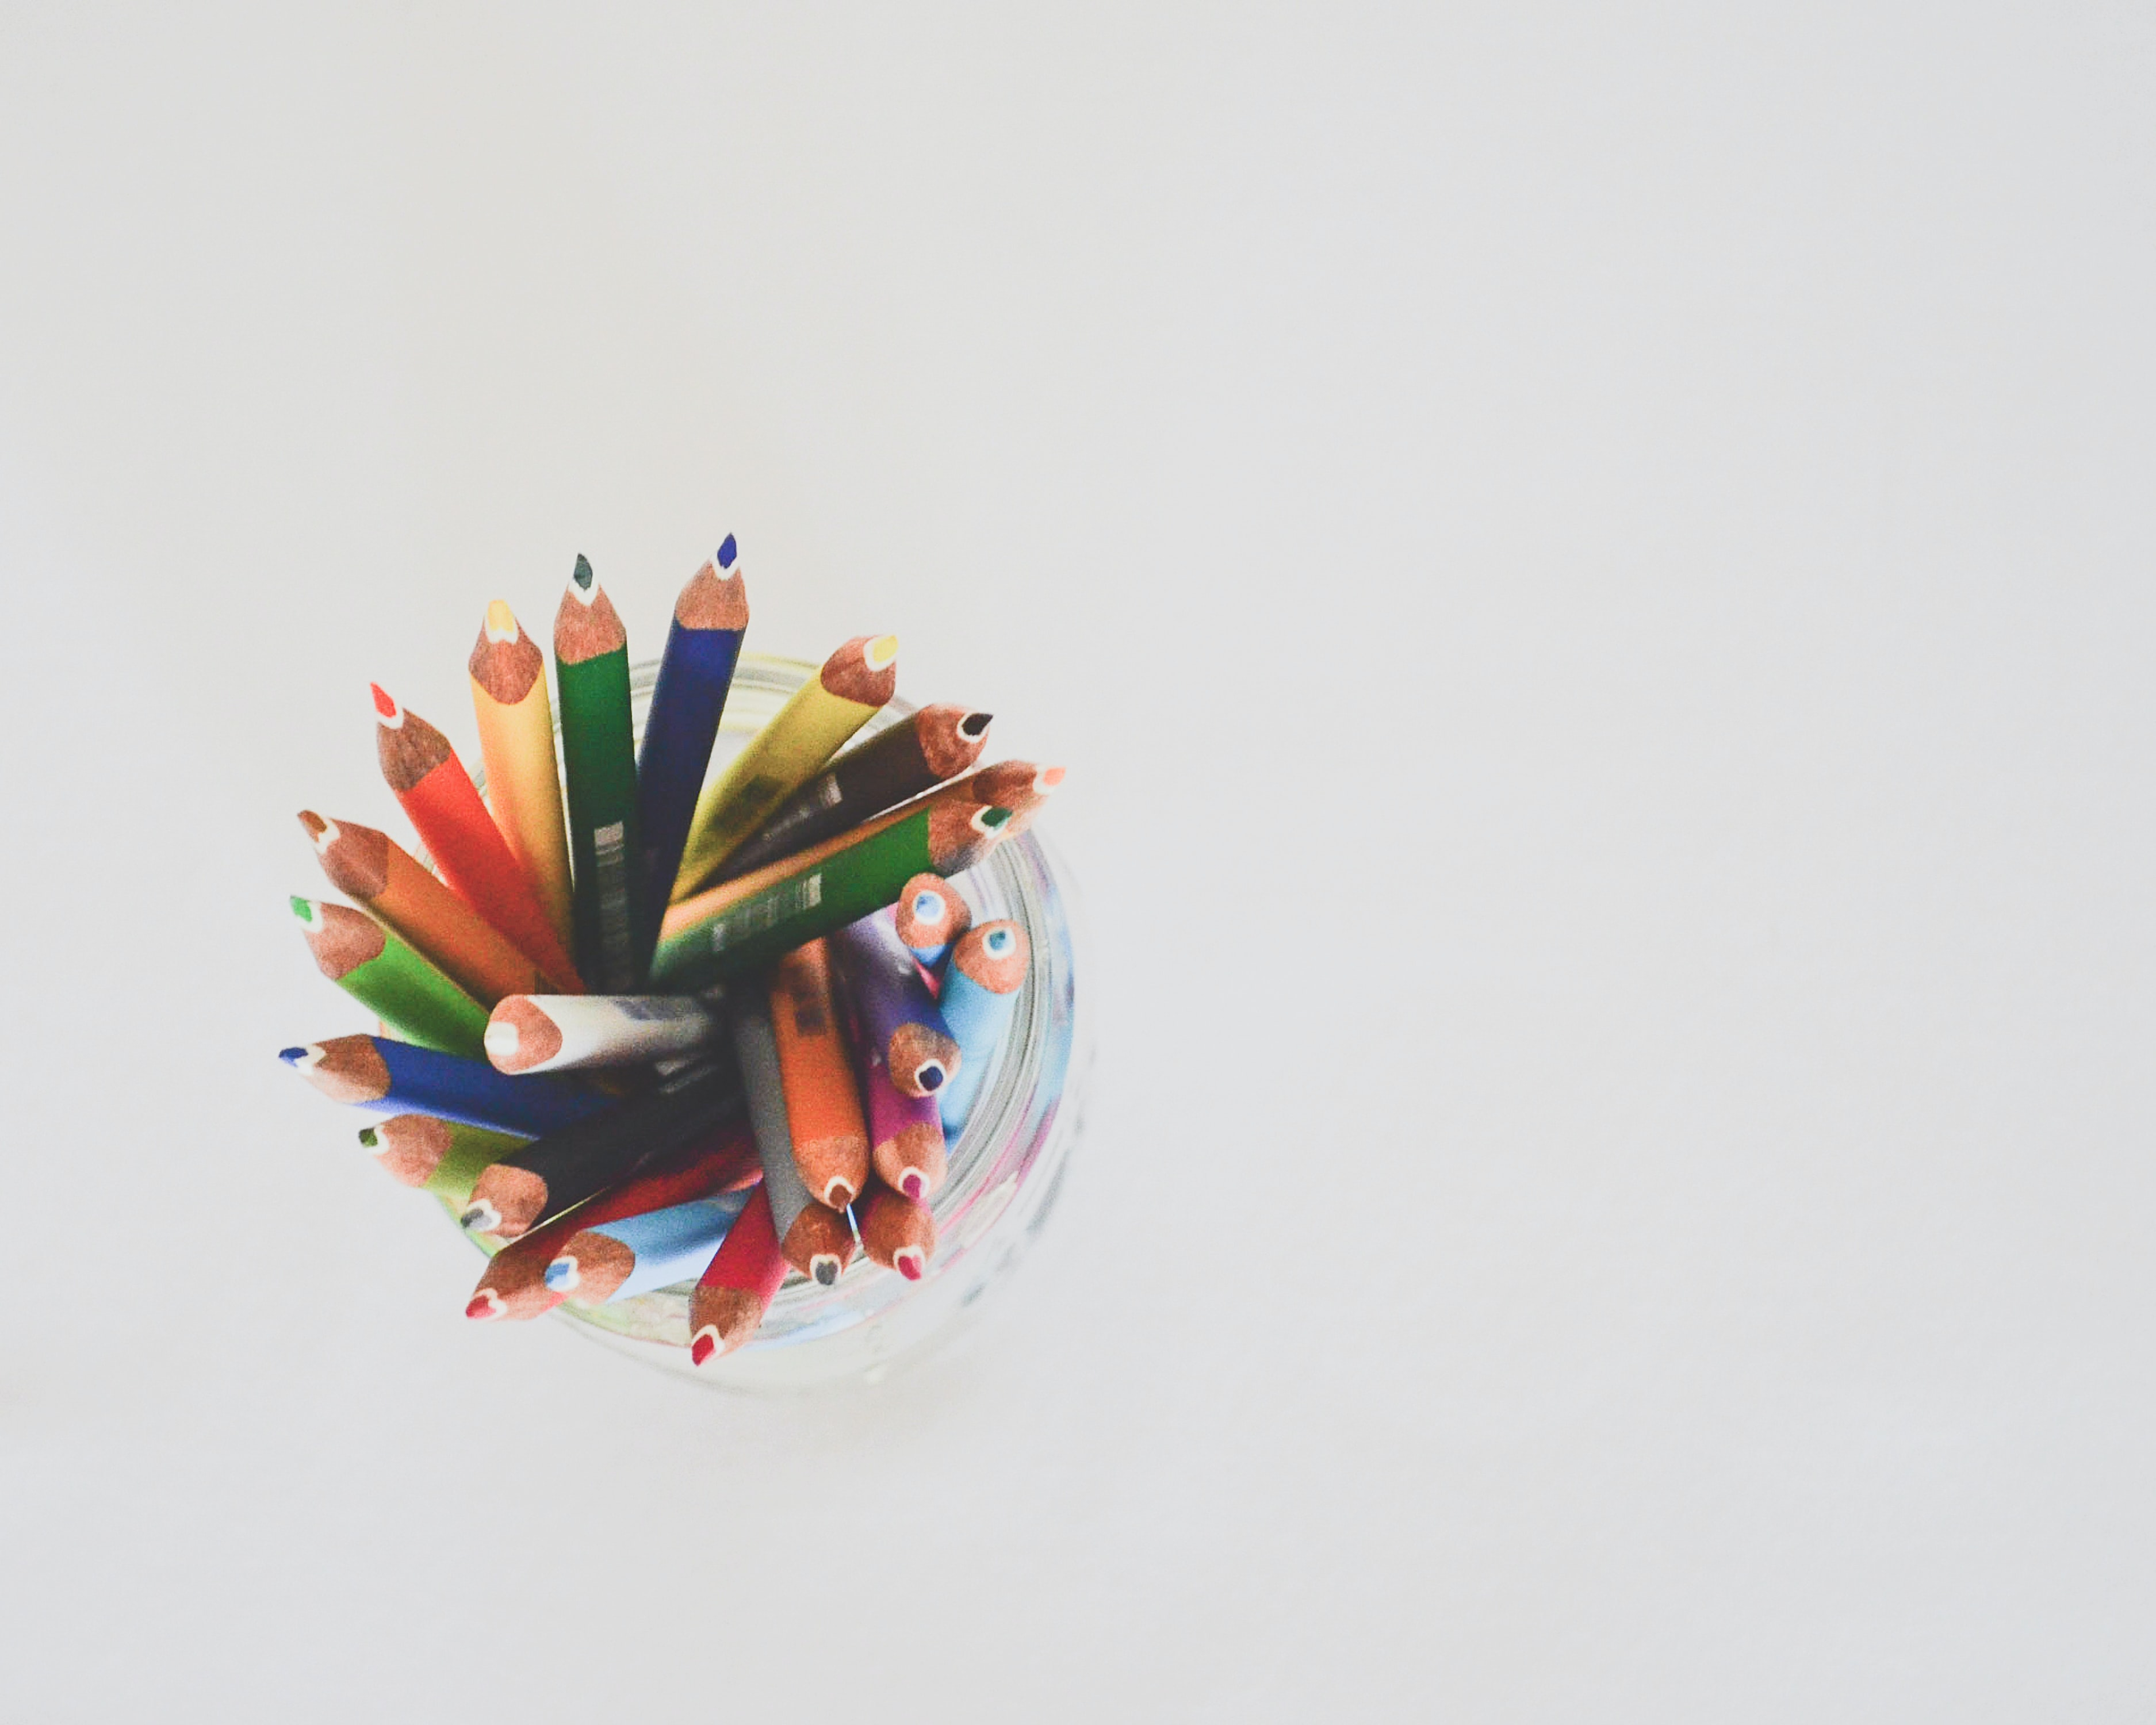 colored pencils in top view photography